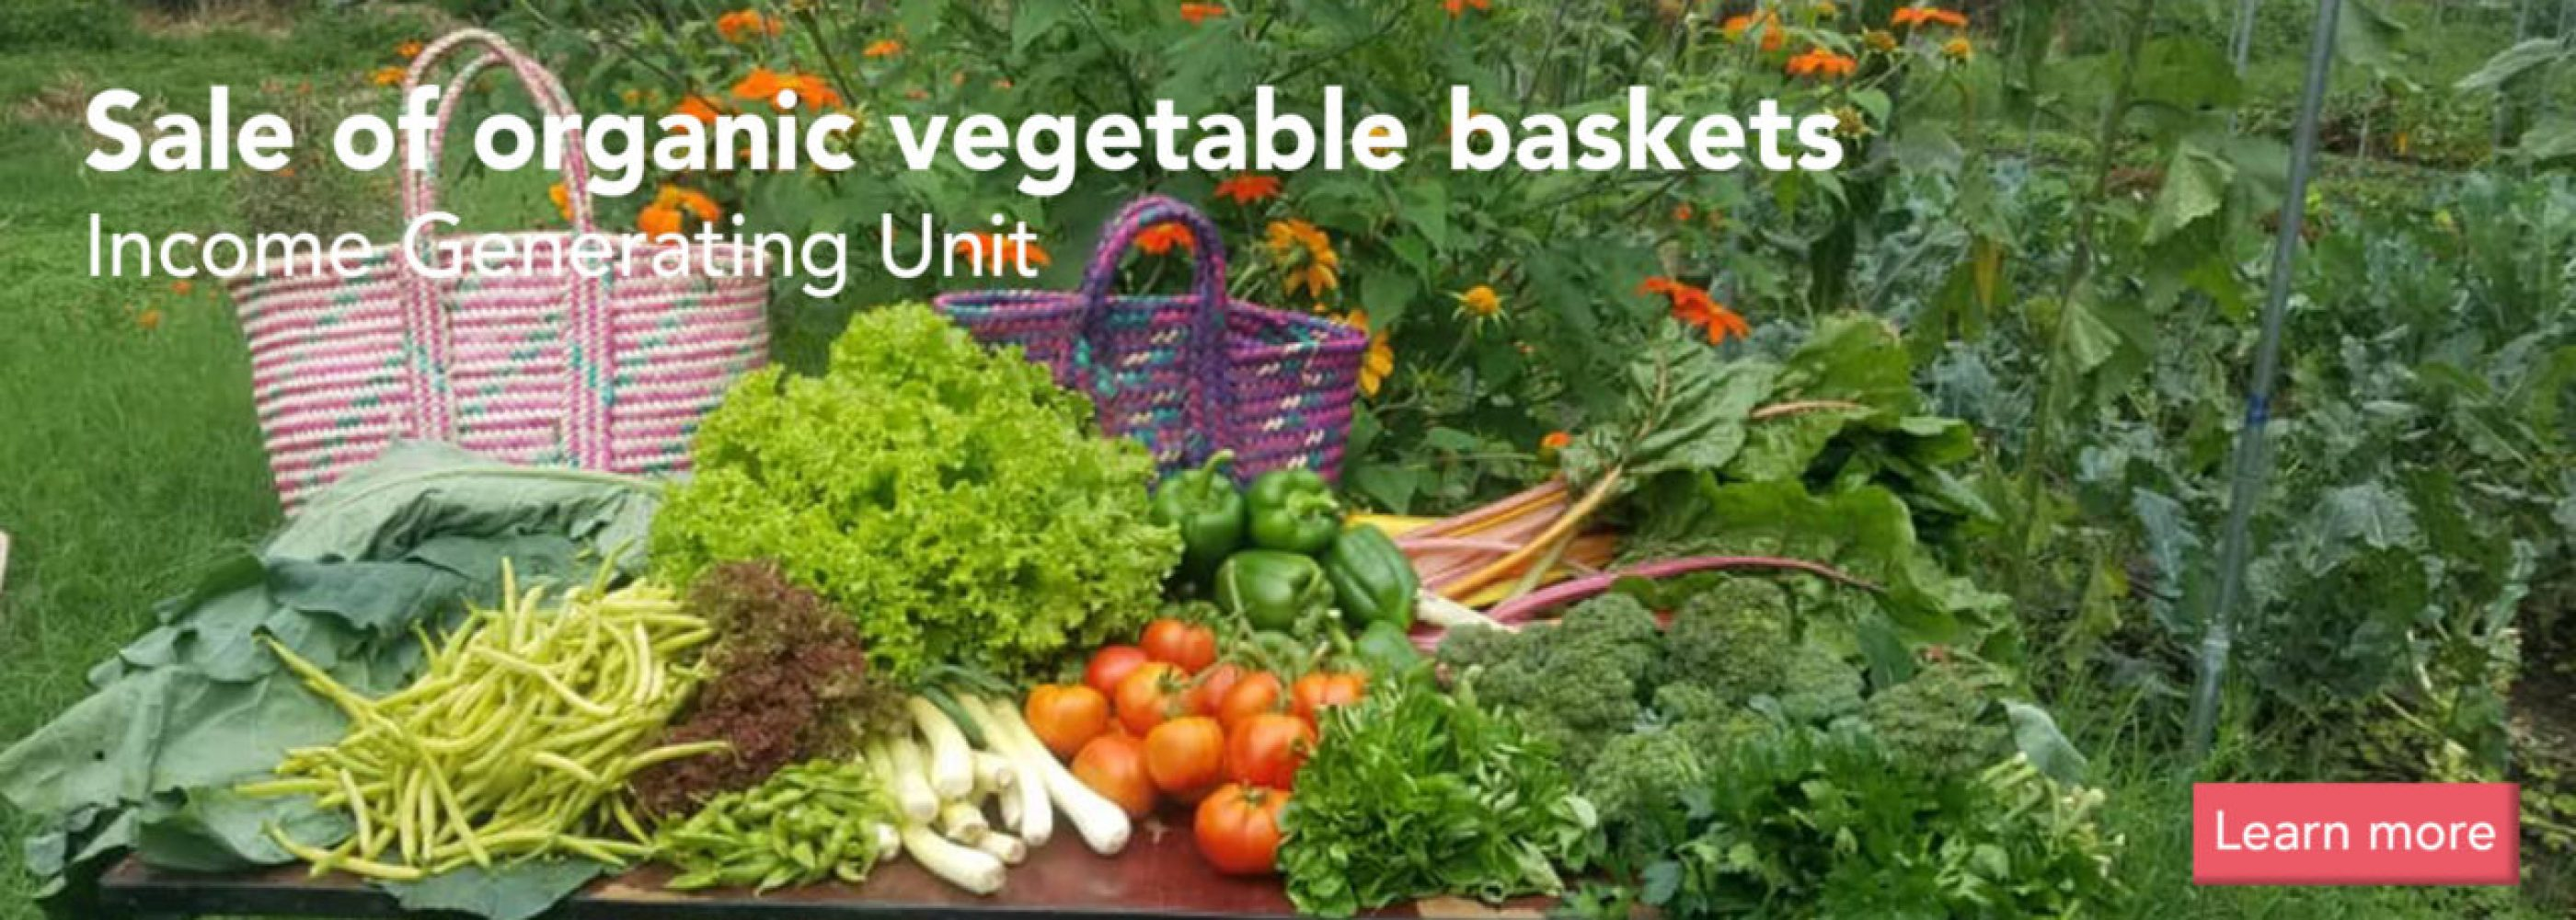 Organic vegetables, herbs and flowers with an ethiopian basket